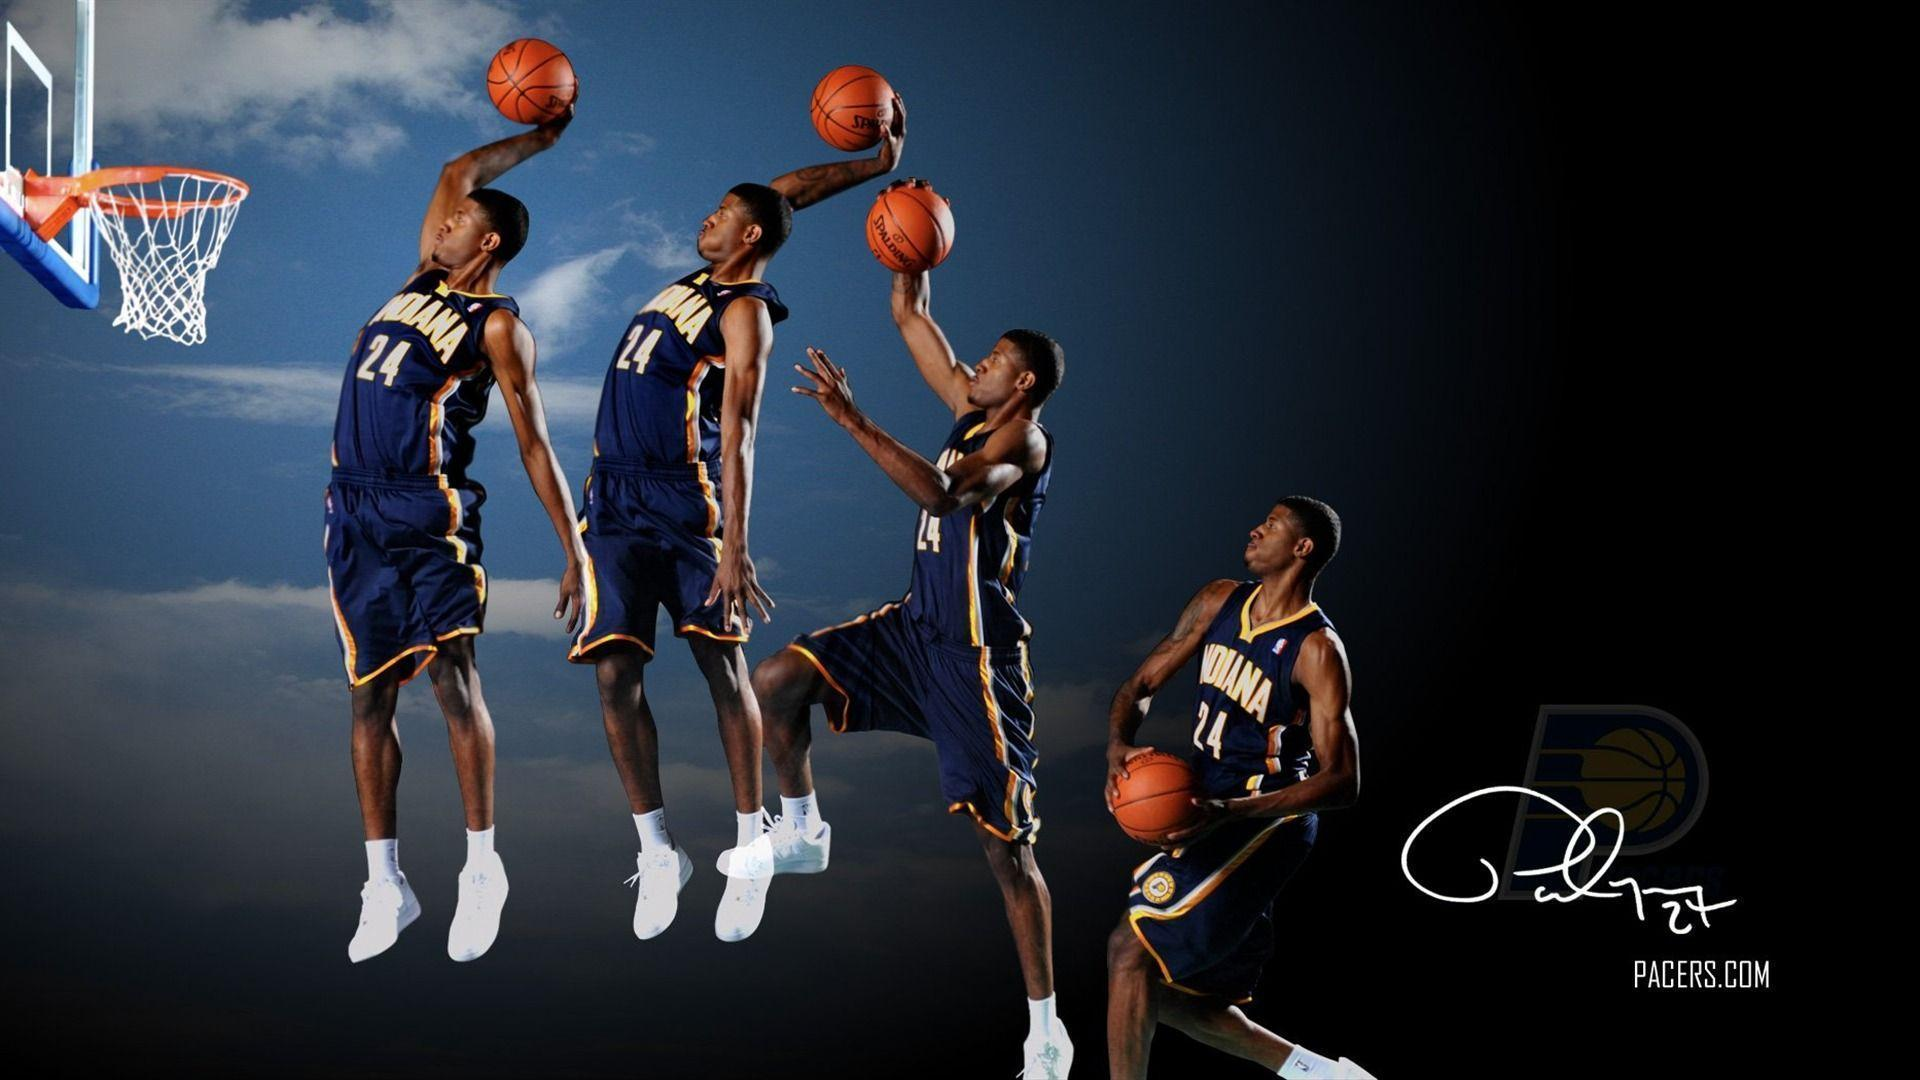 NBA 2010-11 season Indiana Pacers Wallpapers #11 - 1920x1080 ...